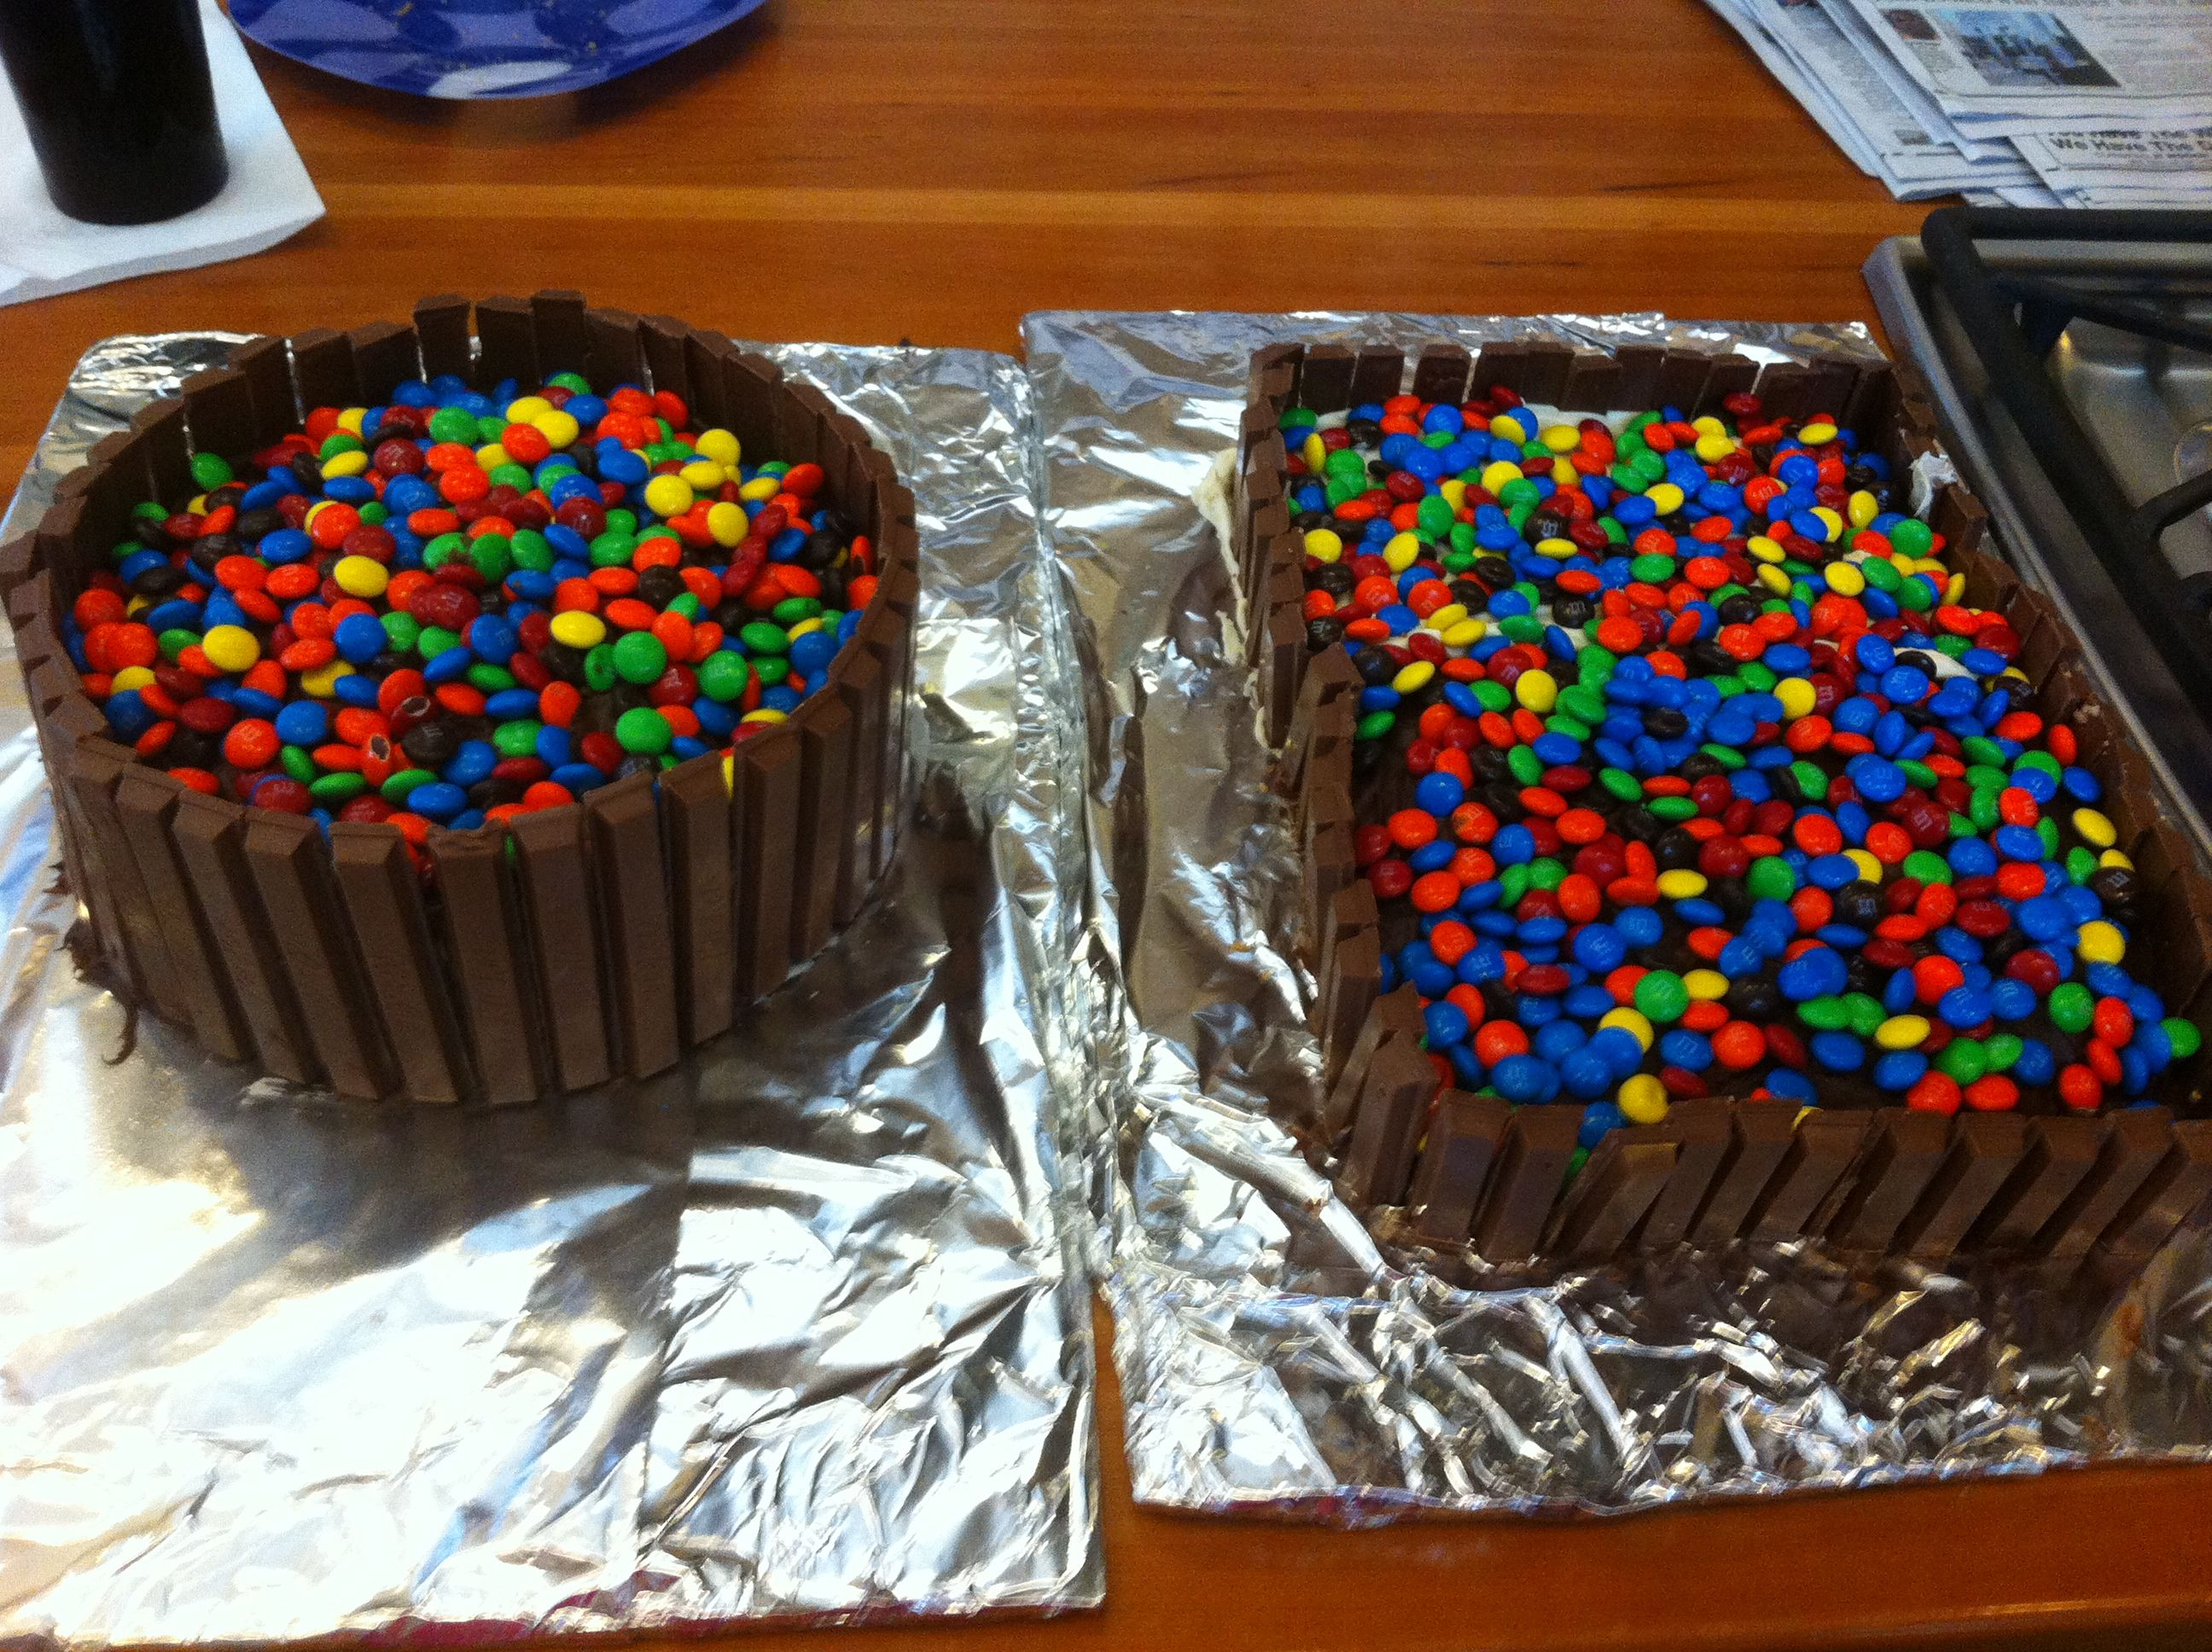 Pinterest Kit Kat Cakes. The Second One Is Just A Sheet Cake & I Cut Kit Kats In Half.